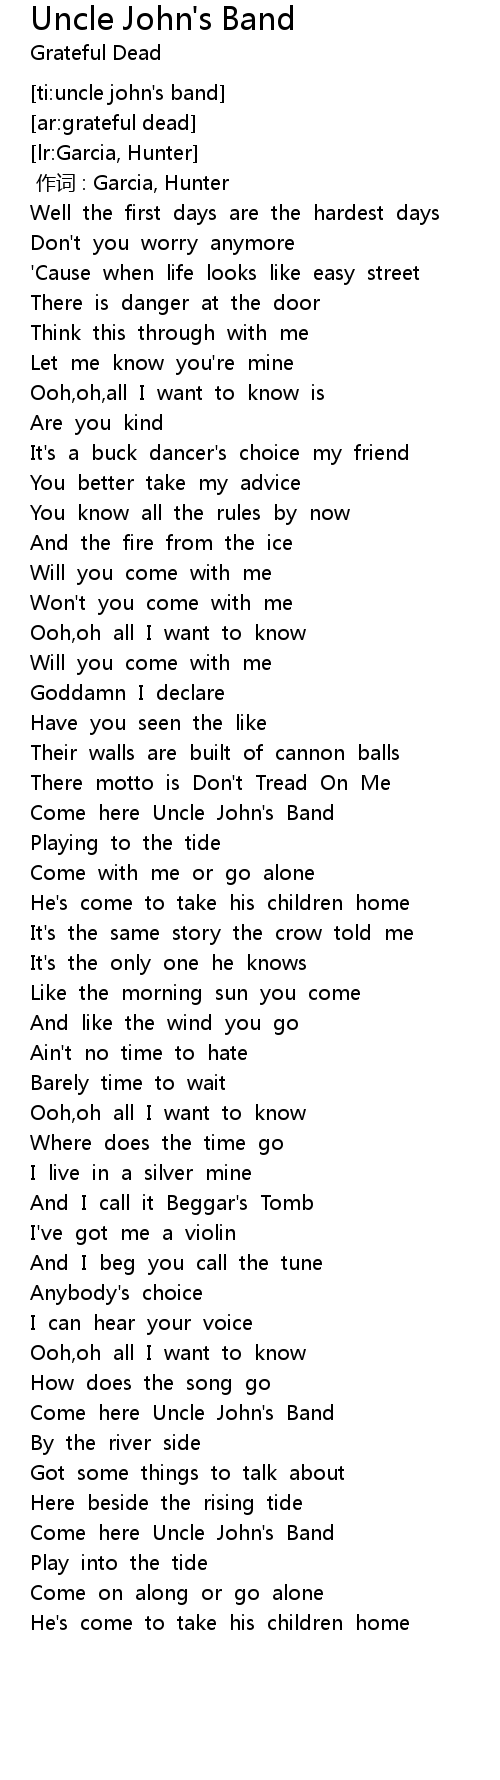 Uncle John's Band Lyrics